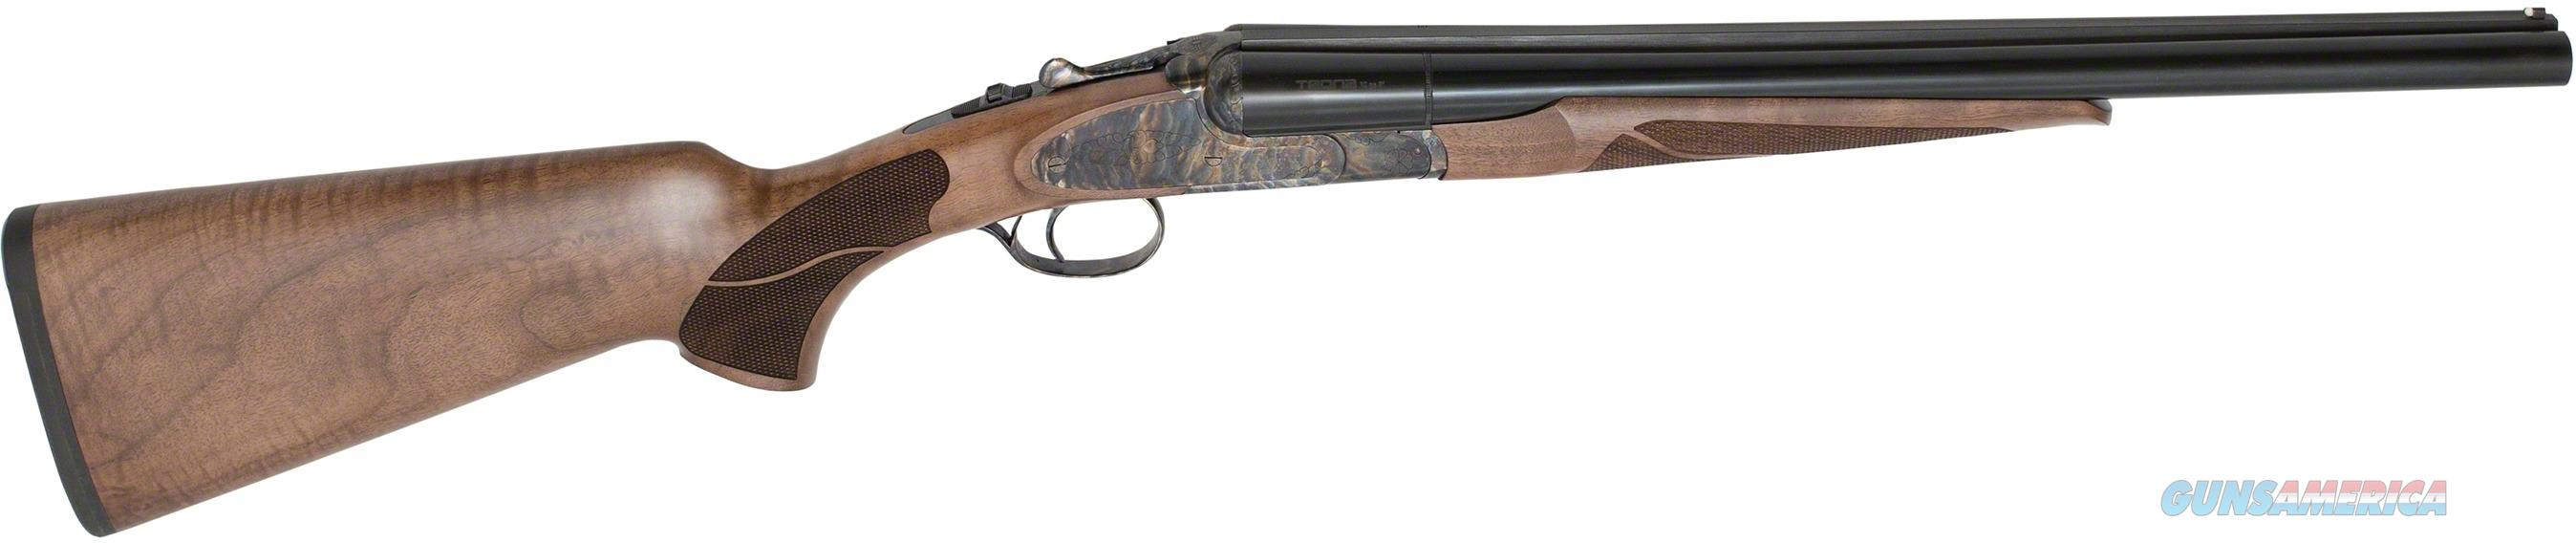 "ZENITH TEDNA C12T EXCELLENCE COACH SIDE BY SIDE SHOTGUN, 12 GUAGE, 18.5"" BBL, WALNUT CASE HARDENED, RUBBER BUTT PLATE TEC12T0185CH  Guns > Rifles > XYZ Misc Rifles"